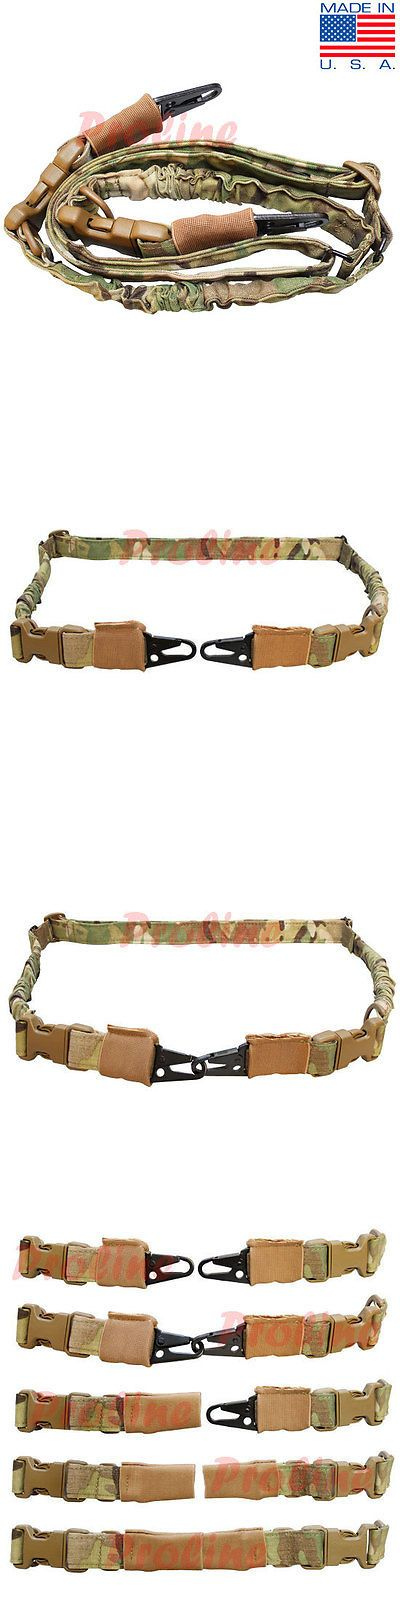 Tactical Slings 177901: Multi-Cam Cbt Tactical 2 Point Bungee Rifle Sling Shoulder Strap Made In Usa -> BUY IT NOW ONLY: $38.99 on eBay!